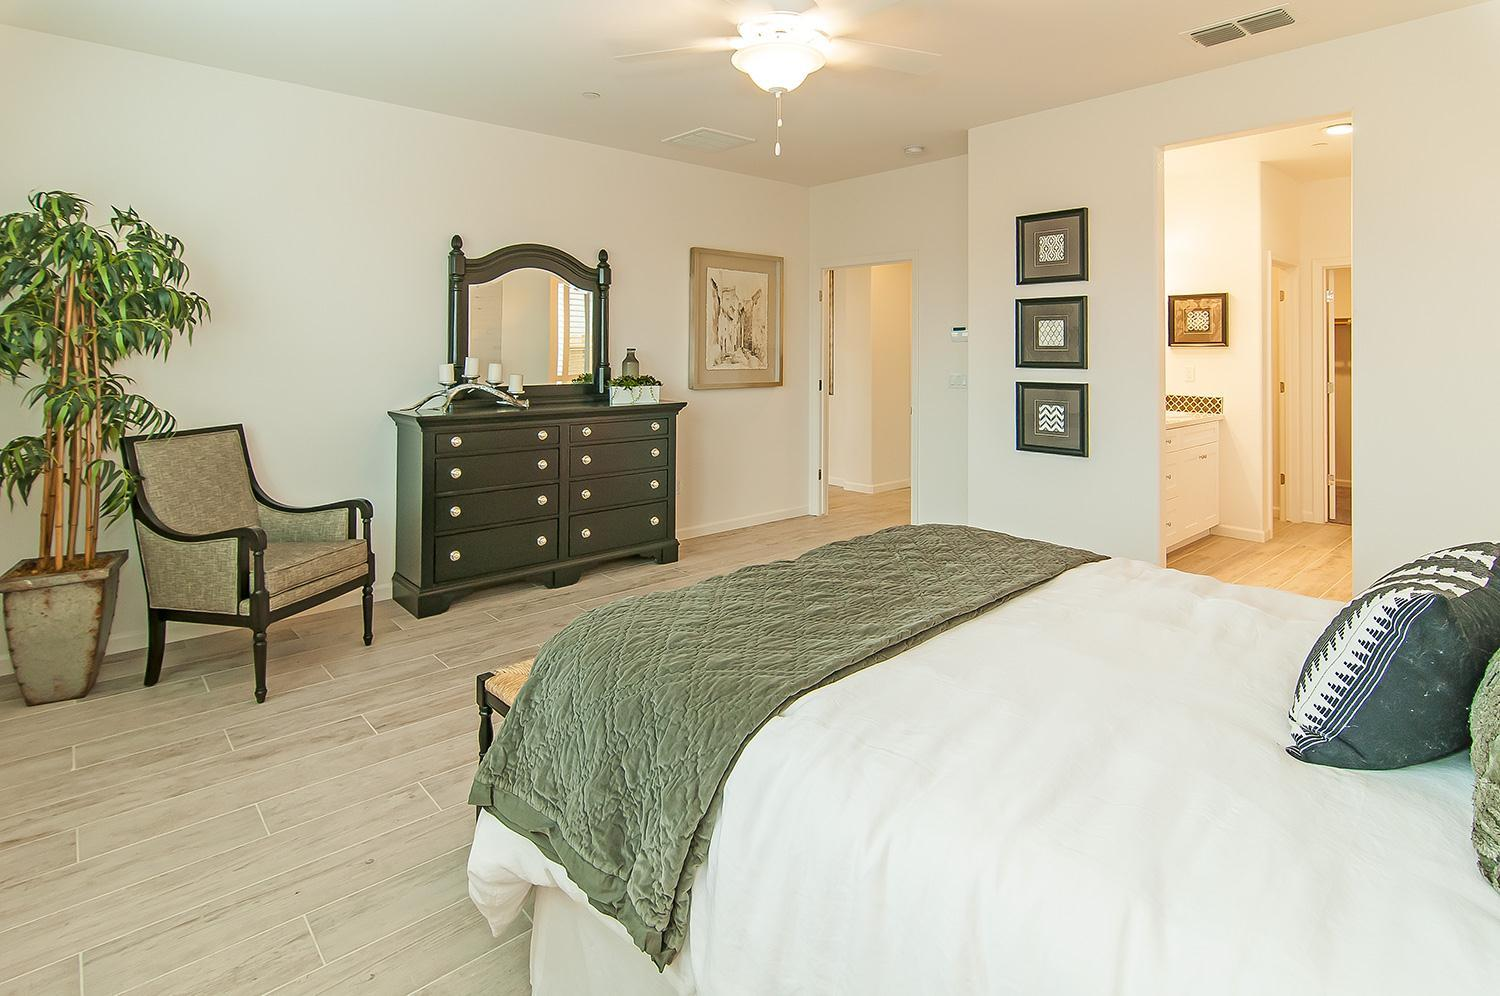 Bedroom featured in the Residence 1818 By Legacy Homes in Merced, CA